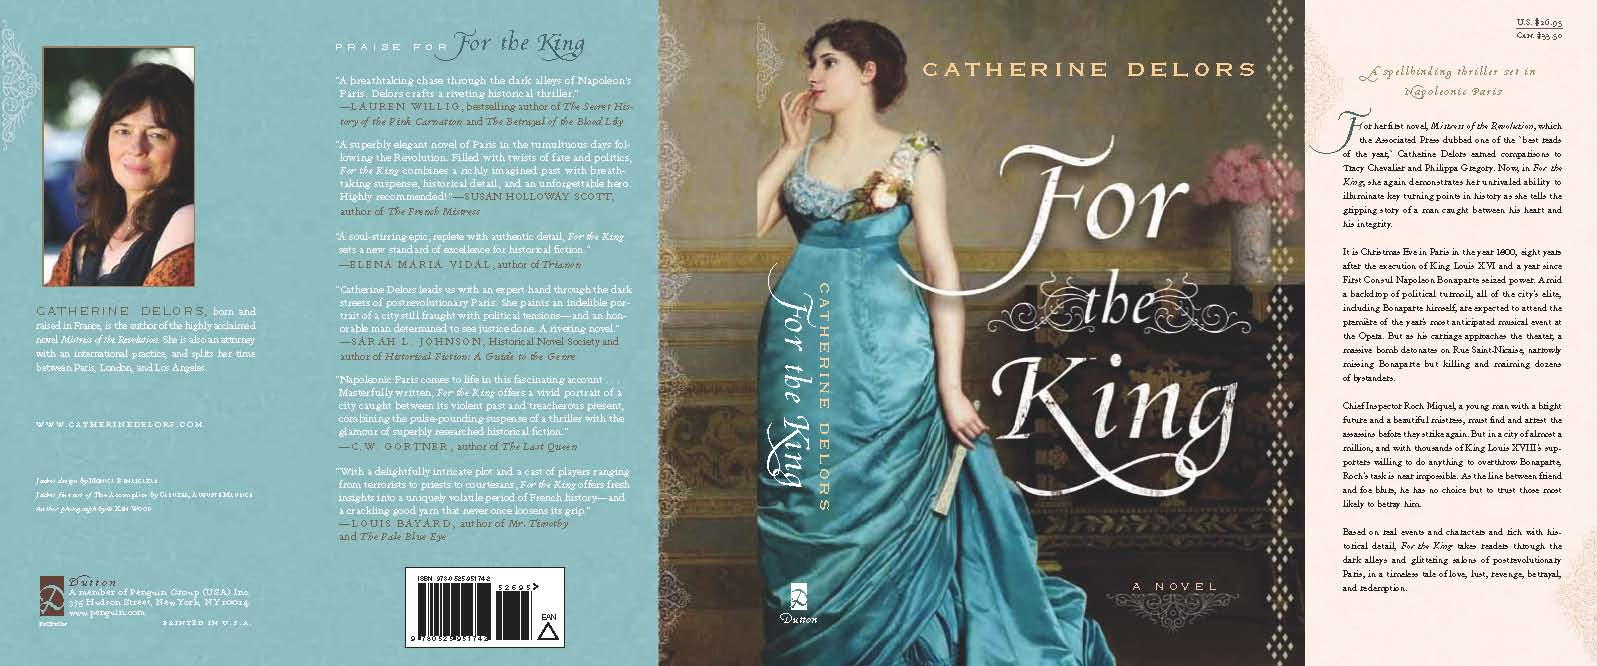 For the King full jacket